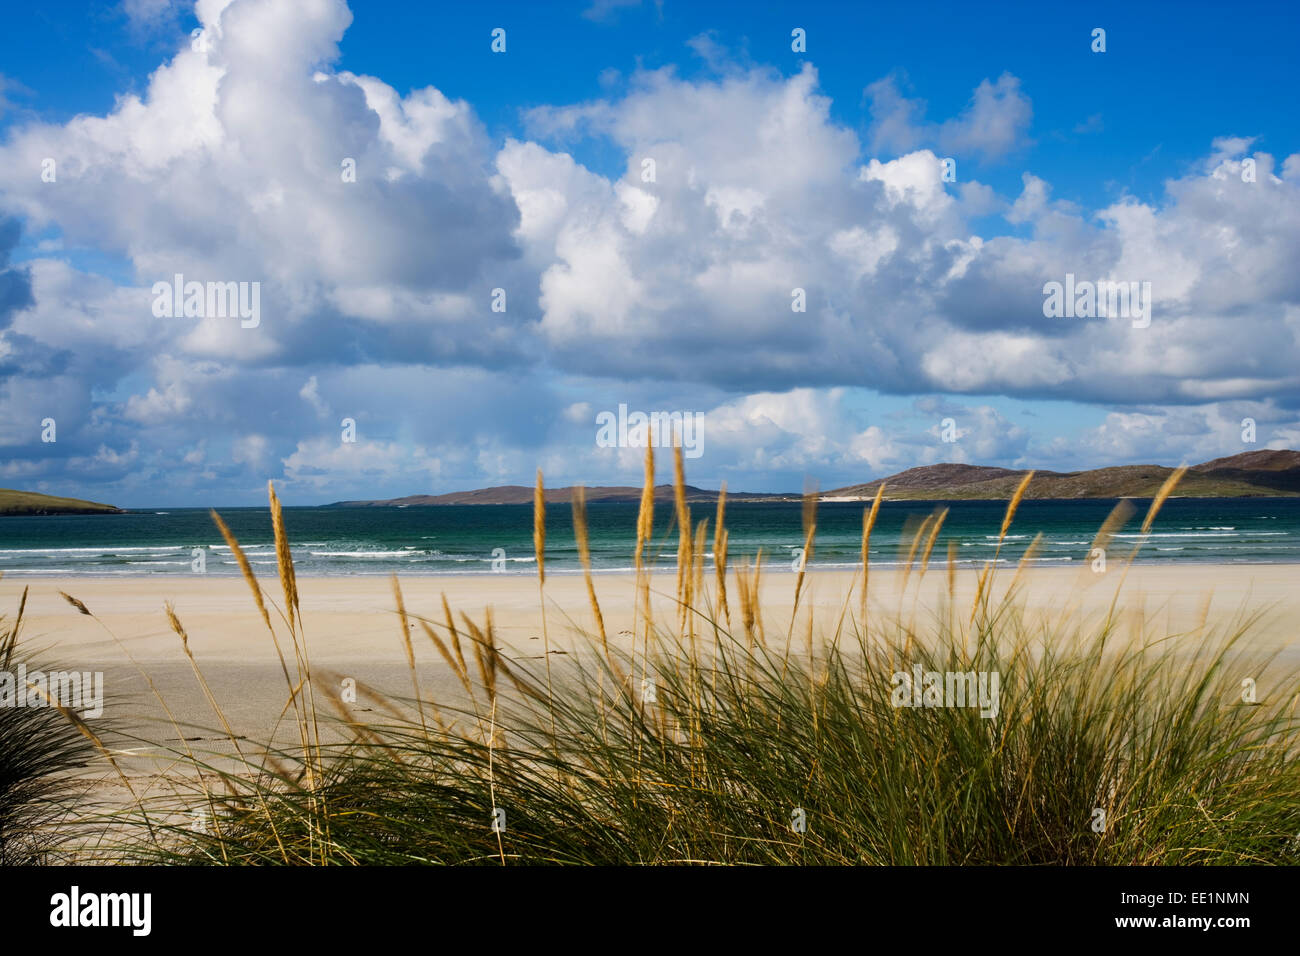 A view looking out from Luskentyre Beach on the west coast of The Isle of Harris, Scotland. Stock Photo